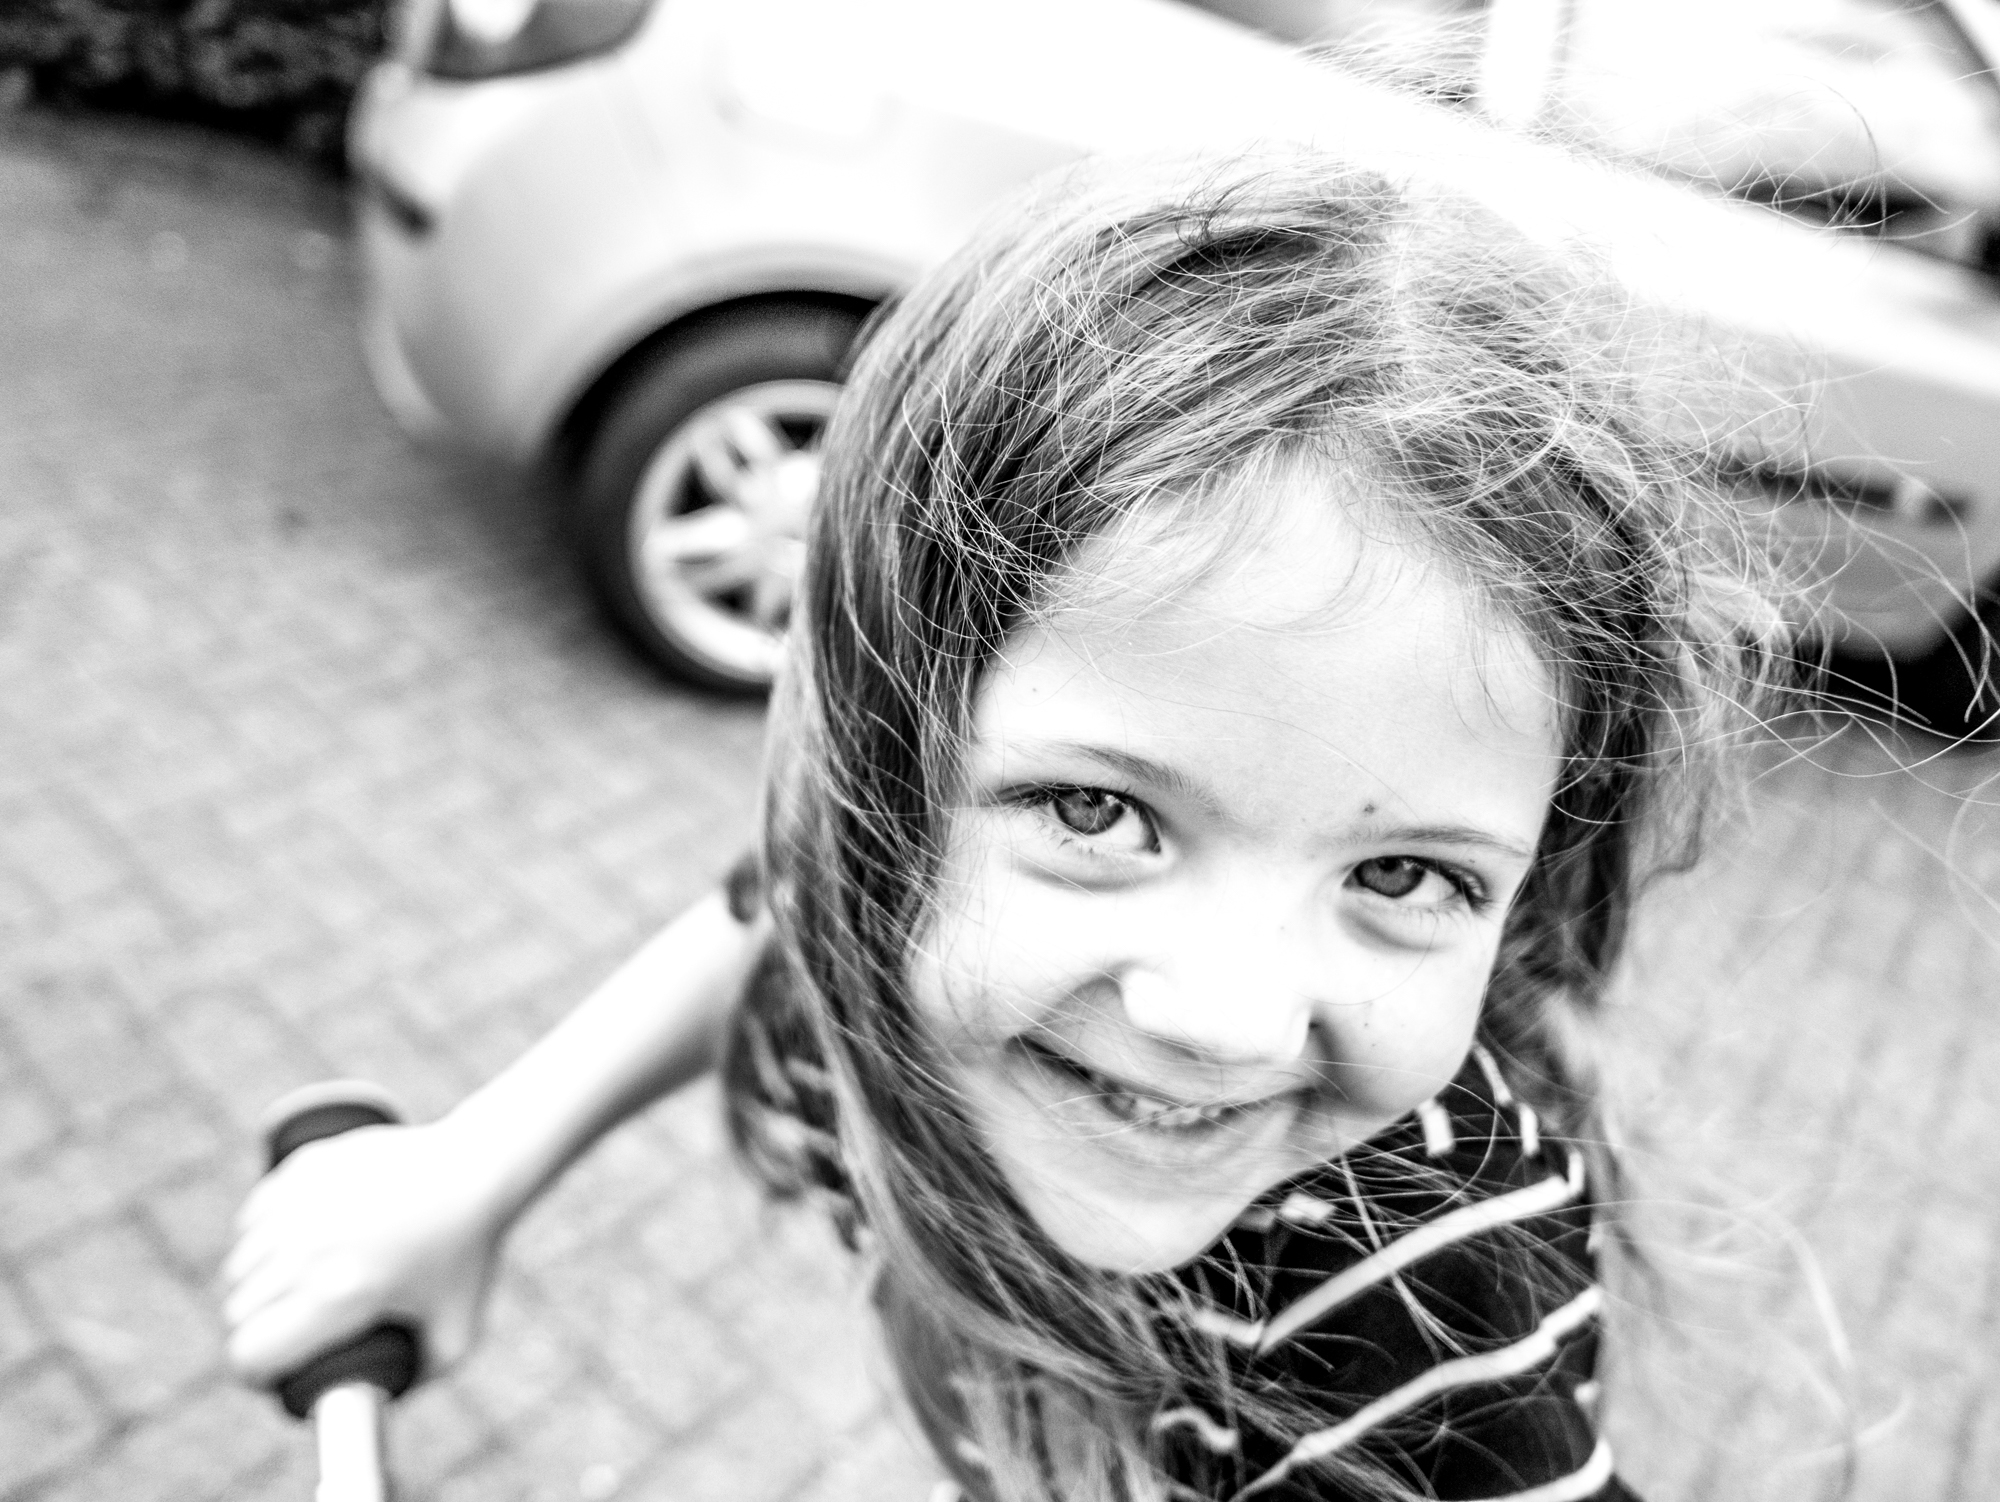 Candid Alternative Photography in Swansea and The Gower